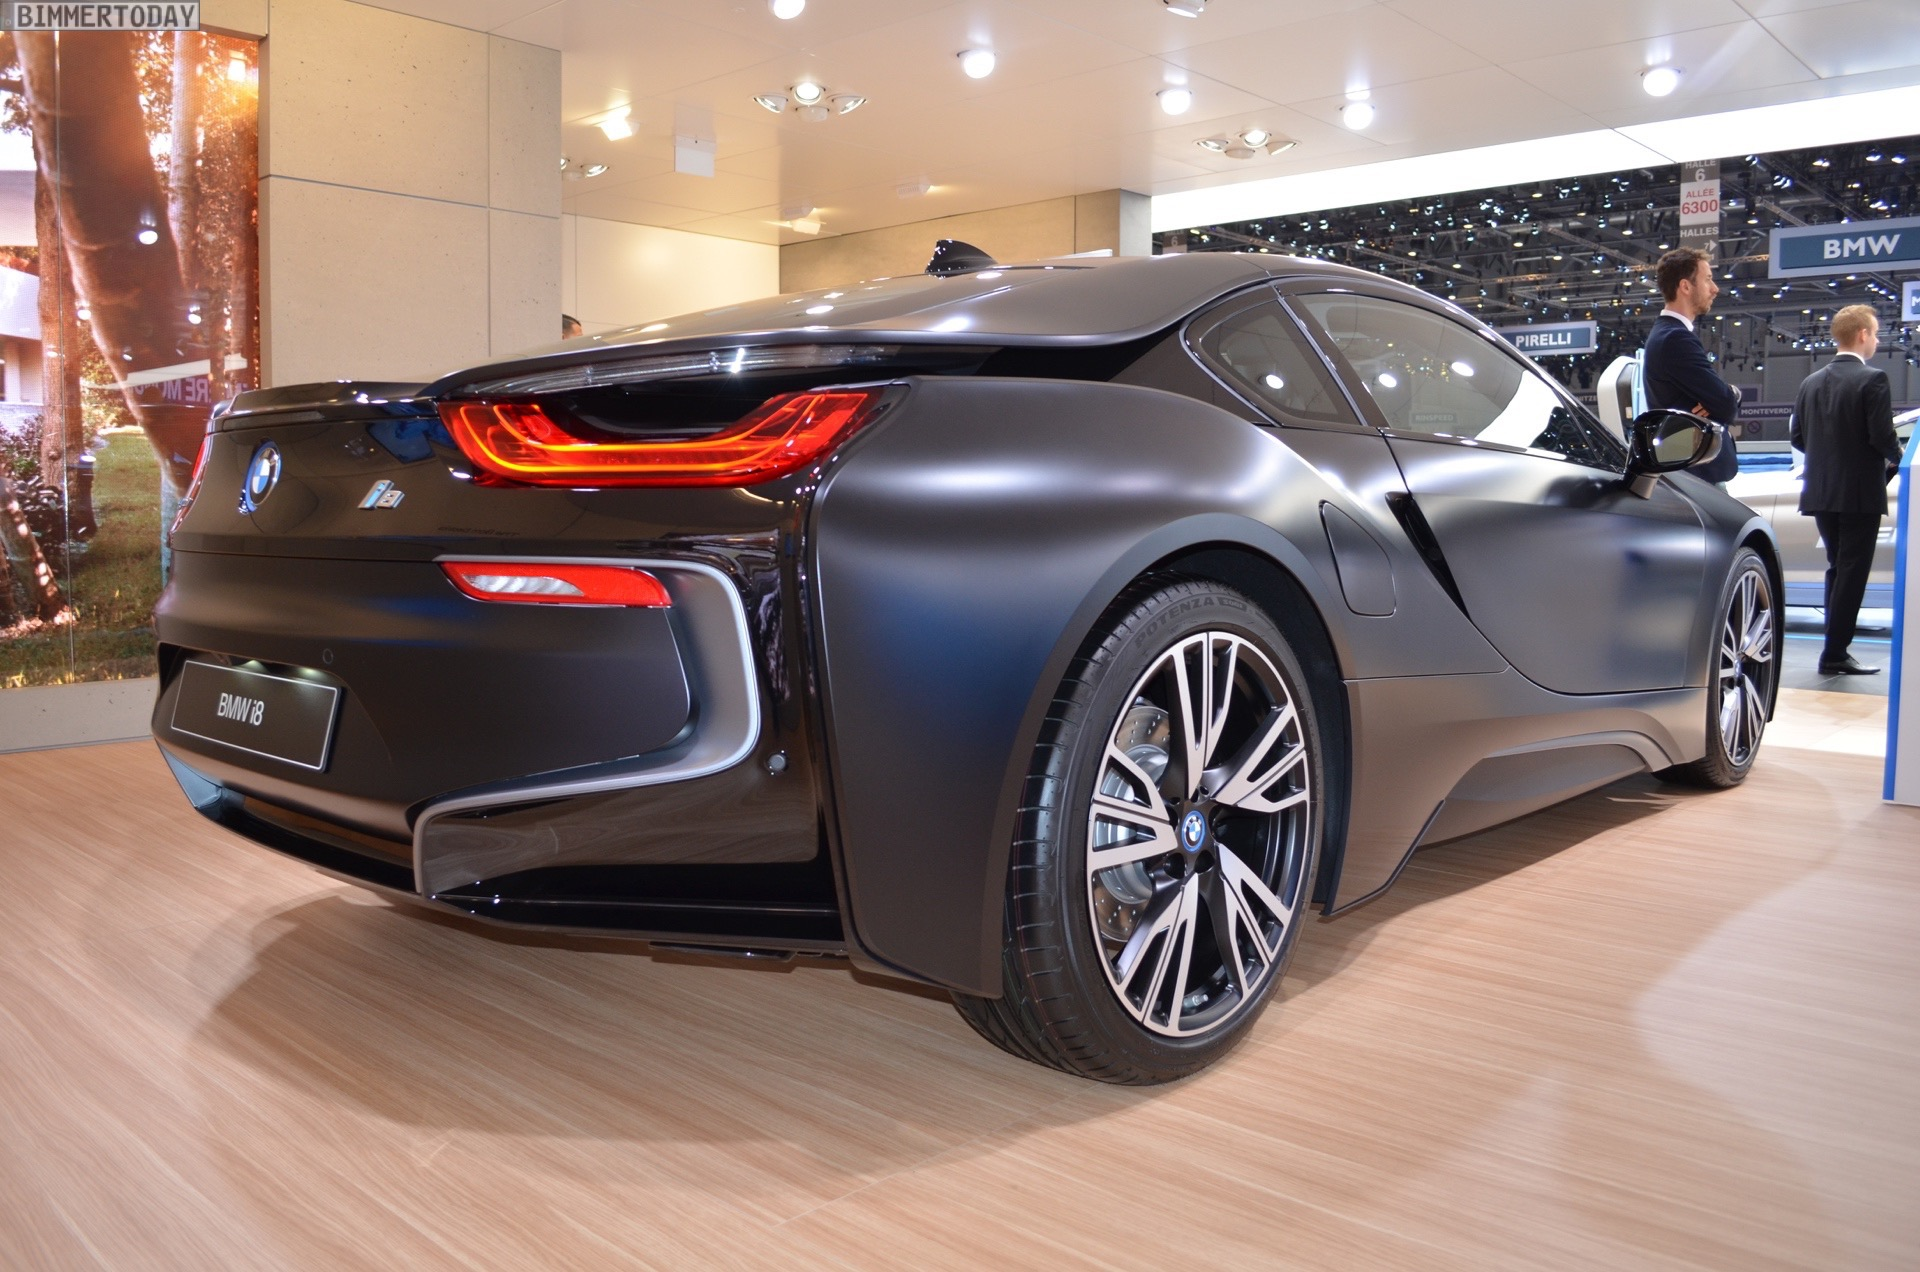 can-canh-ban-dac-biet-bmw-i8-protonic-frozen-black